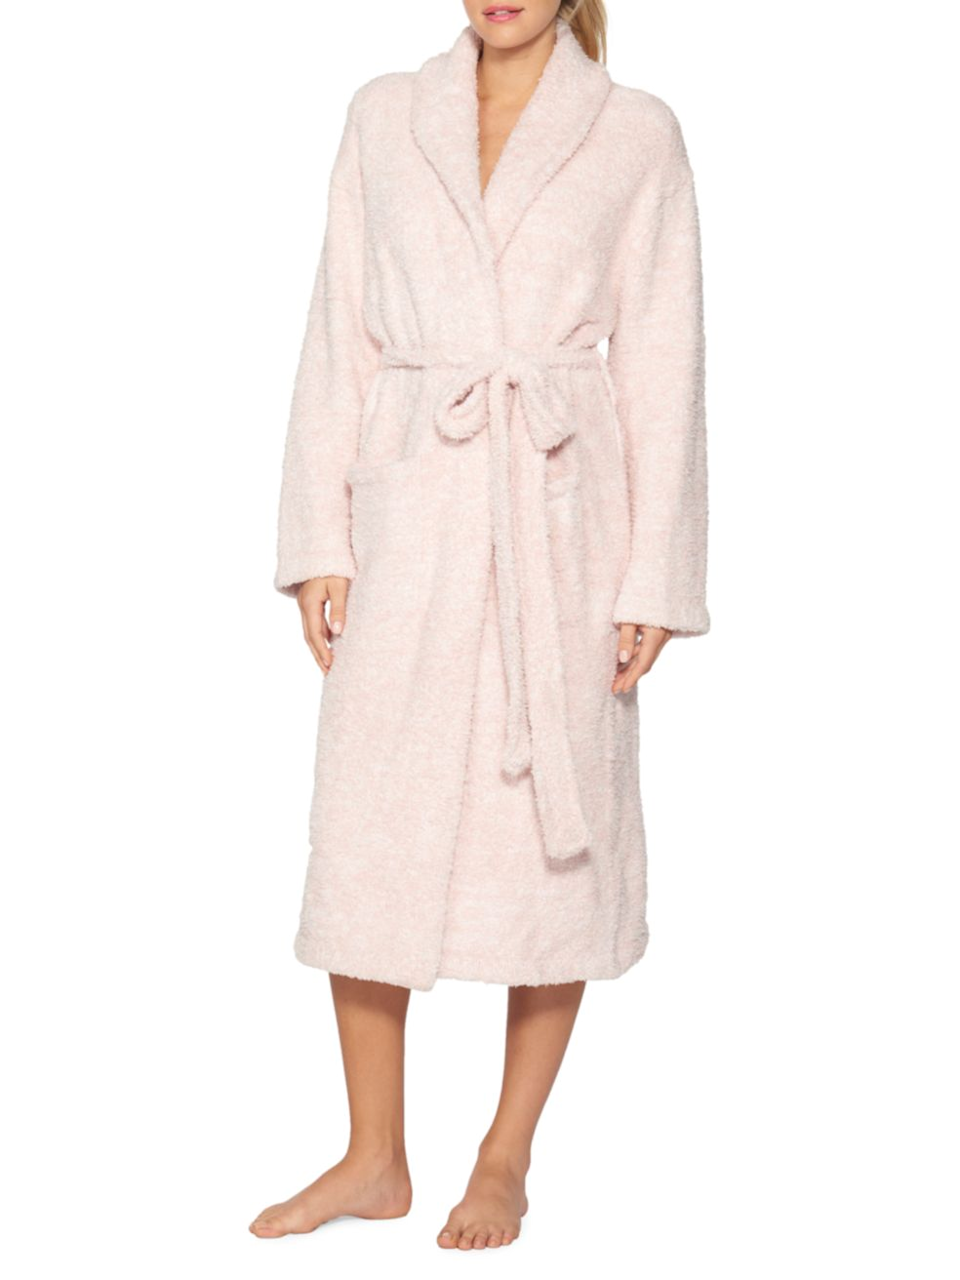 """<h3><a href=""""https://www.saksfifthavenue.com/barefoot-dreams-the-cozychic-heathered-robe/product/0400012721365"""" rel=""""nofollow noopener"""" target=""""_blank"""" data-ylk=""""slk:Barefoot Dreams CozyChic Robe"""" class=""""link rapid-noclick-resp"""">Barefoot Dreams CozyChic Robe</a></h3><br>If the brand name doesn't say it all — this machine-washable robe is crafted for lounging longevity from a super soft and cushy microfiber that won't shrink or pill.<br><br>One reviewer calls it the, """"Most comfortable robe ever,"""" declaring: """"I'm so glad I bought this robe. It's incredibly soft and cozy. It is thick fabric without being heavy or hot. Totally a year-round robe.""""<br><br><strong>BAREFOOT DREAMS®</strong> The CozyChic Robe, $, available at <a href=""""https://go.skimresources.com/?id=30283X879131&url=https%3A%2F%2Fwww.saksfifthavenue.com%2Fbarefoot-dreams-the-cozychic-heathered-robe%2Fproduct%2F0400012721365"""" rel=""""nofollow noopener"""" target=""""_blank"""" data-ylk=""""slk:Saks Fifth Avenue"""" class=""""link rapid-noclick-resp"""">Saks Fifth Avenue</a>"""